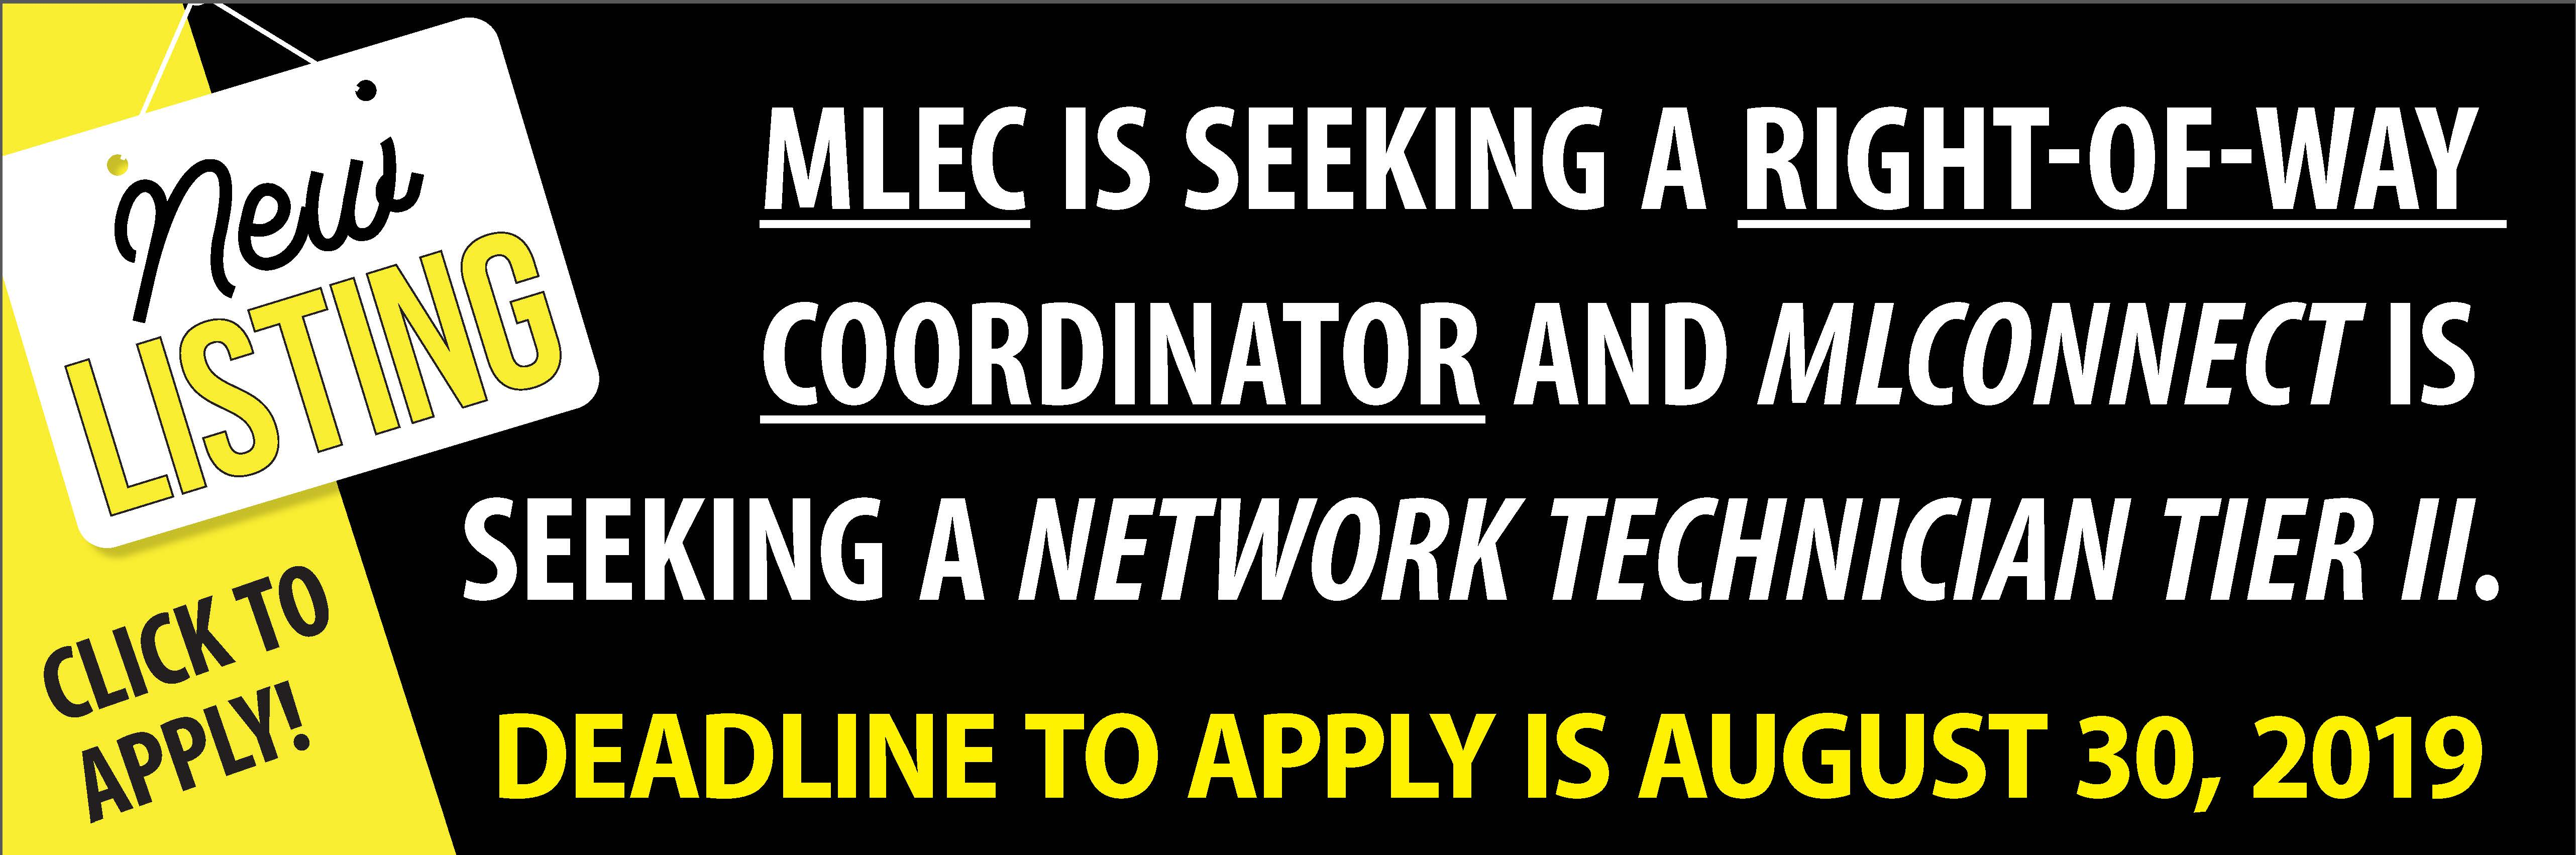 New Listing! MLEC is seeking a Right-of-Way Coordinator and MLConnect is seeking a Network Technician Tier II. Click to apply! Deadline is Friday, August 30, 2019.